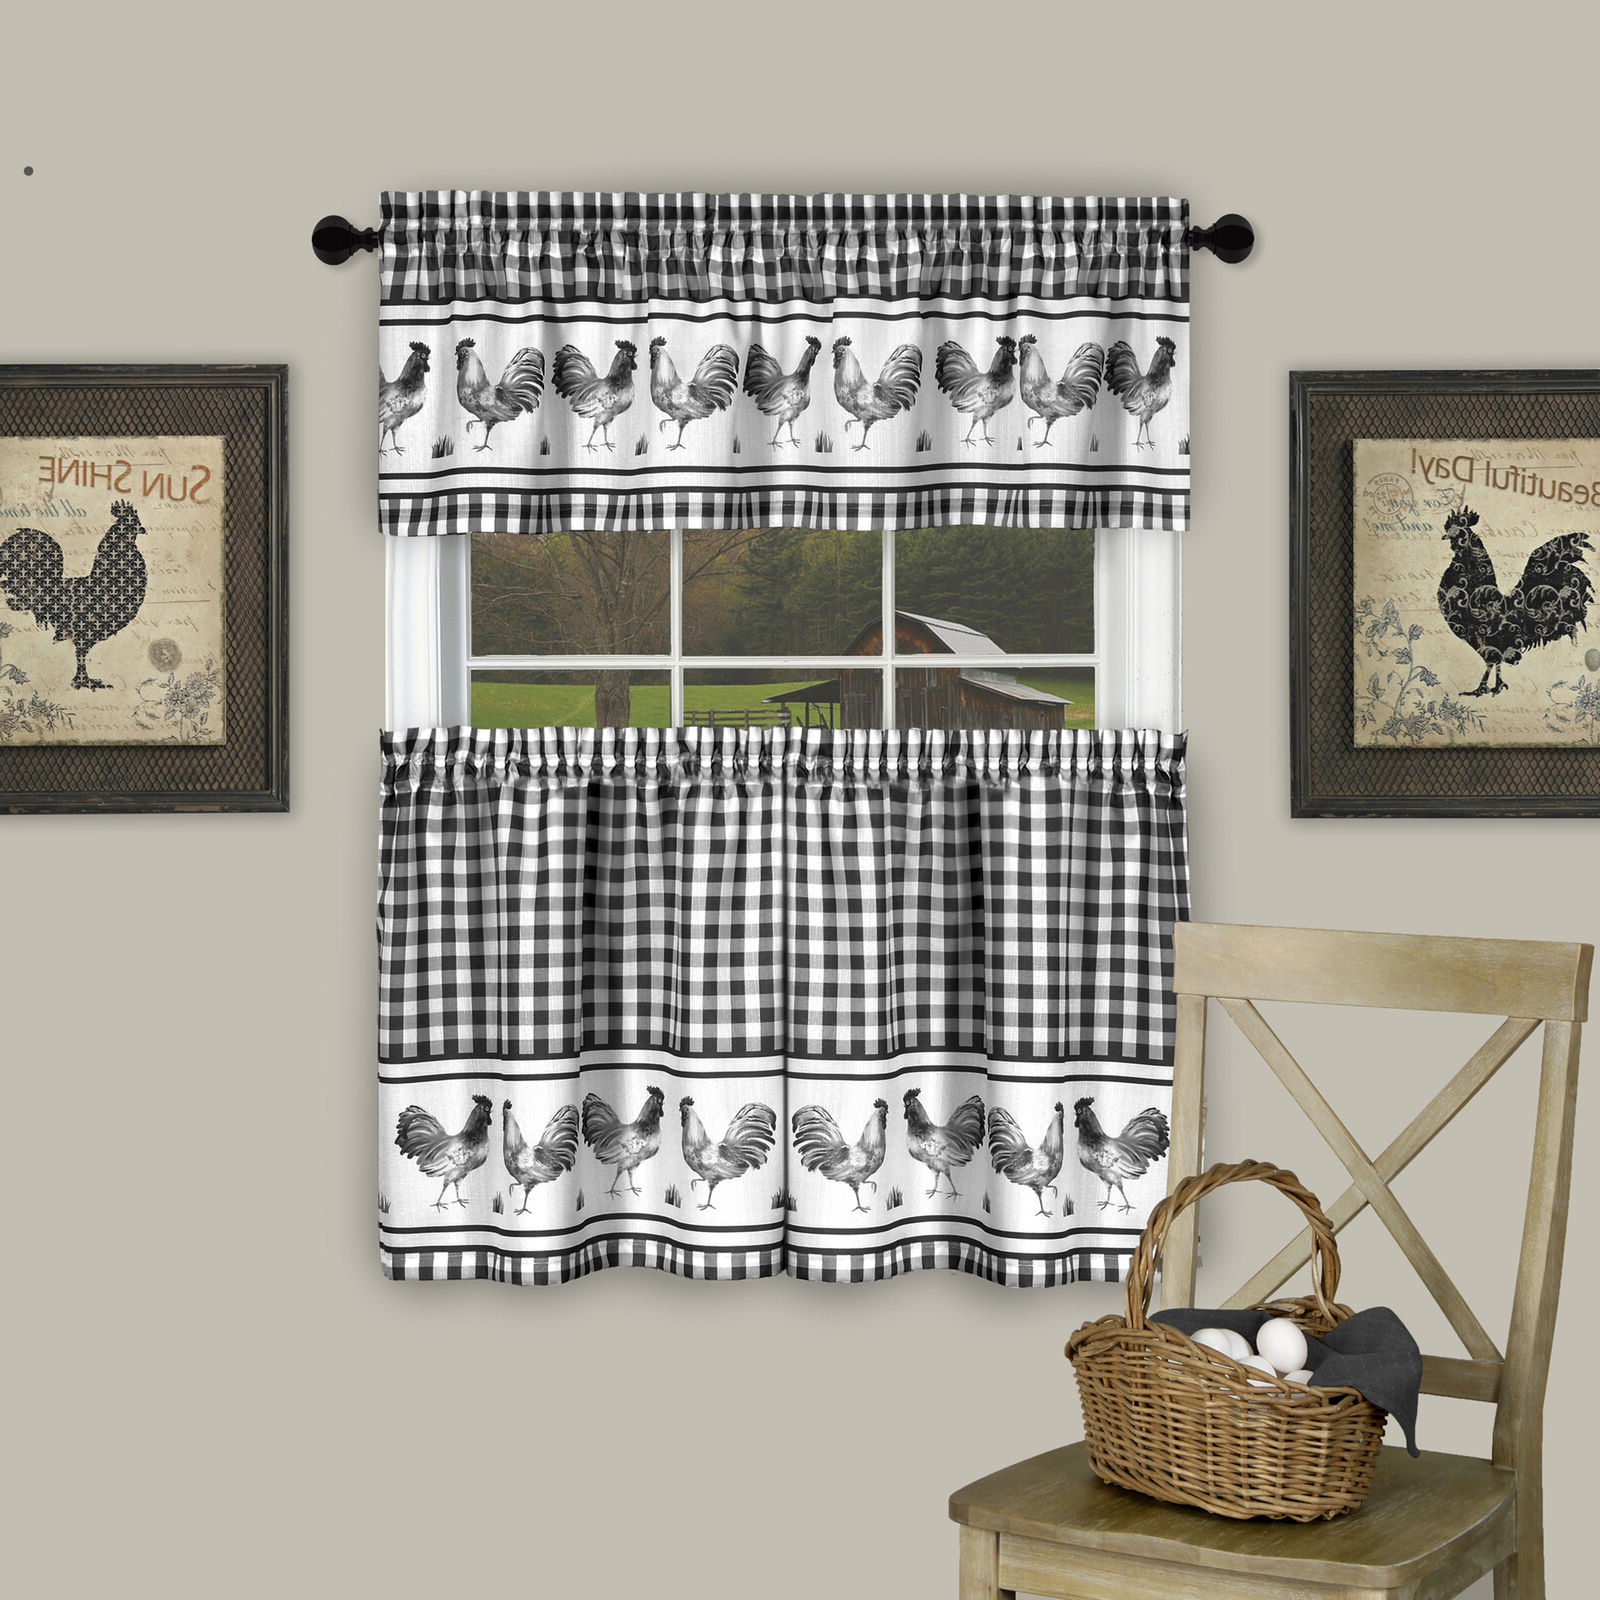 Live, Love, Laugh Window Curtain Tier Pair And Valance Sets In Best And Newest 3Pc Kitchen Curtain Set, Check Gingham Plaid Rooster, Tier Panels And  Valance (Gallery 7 of 20)